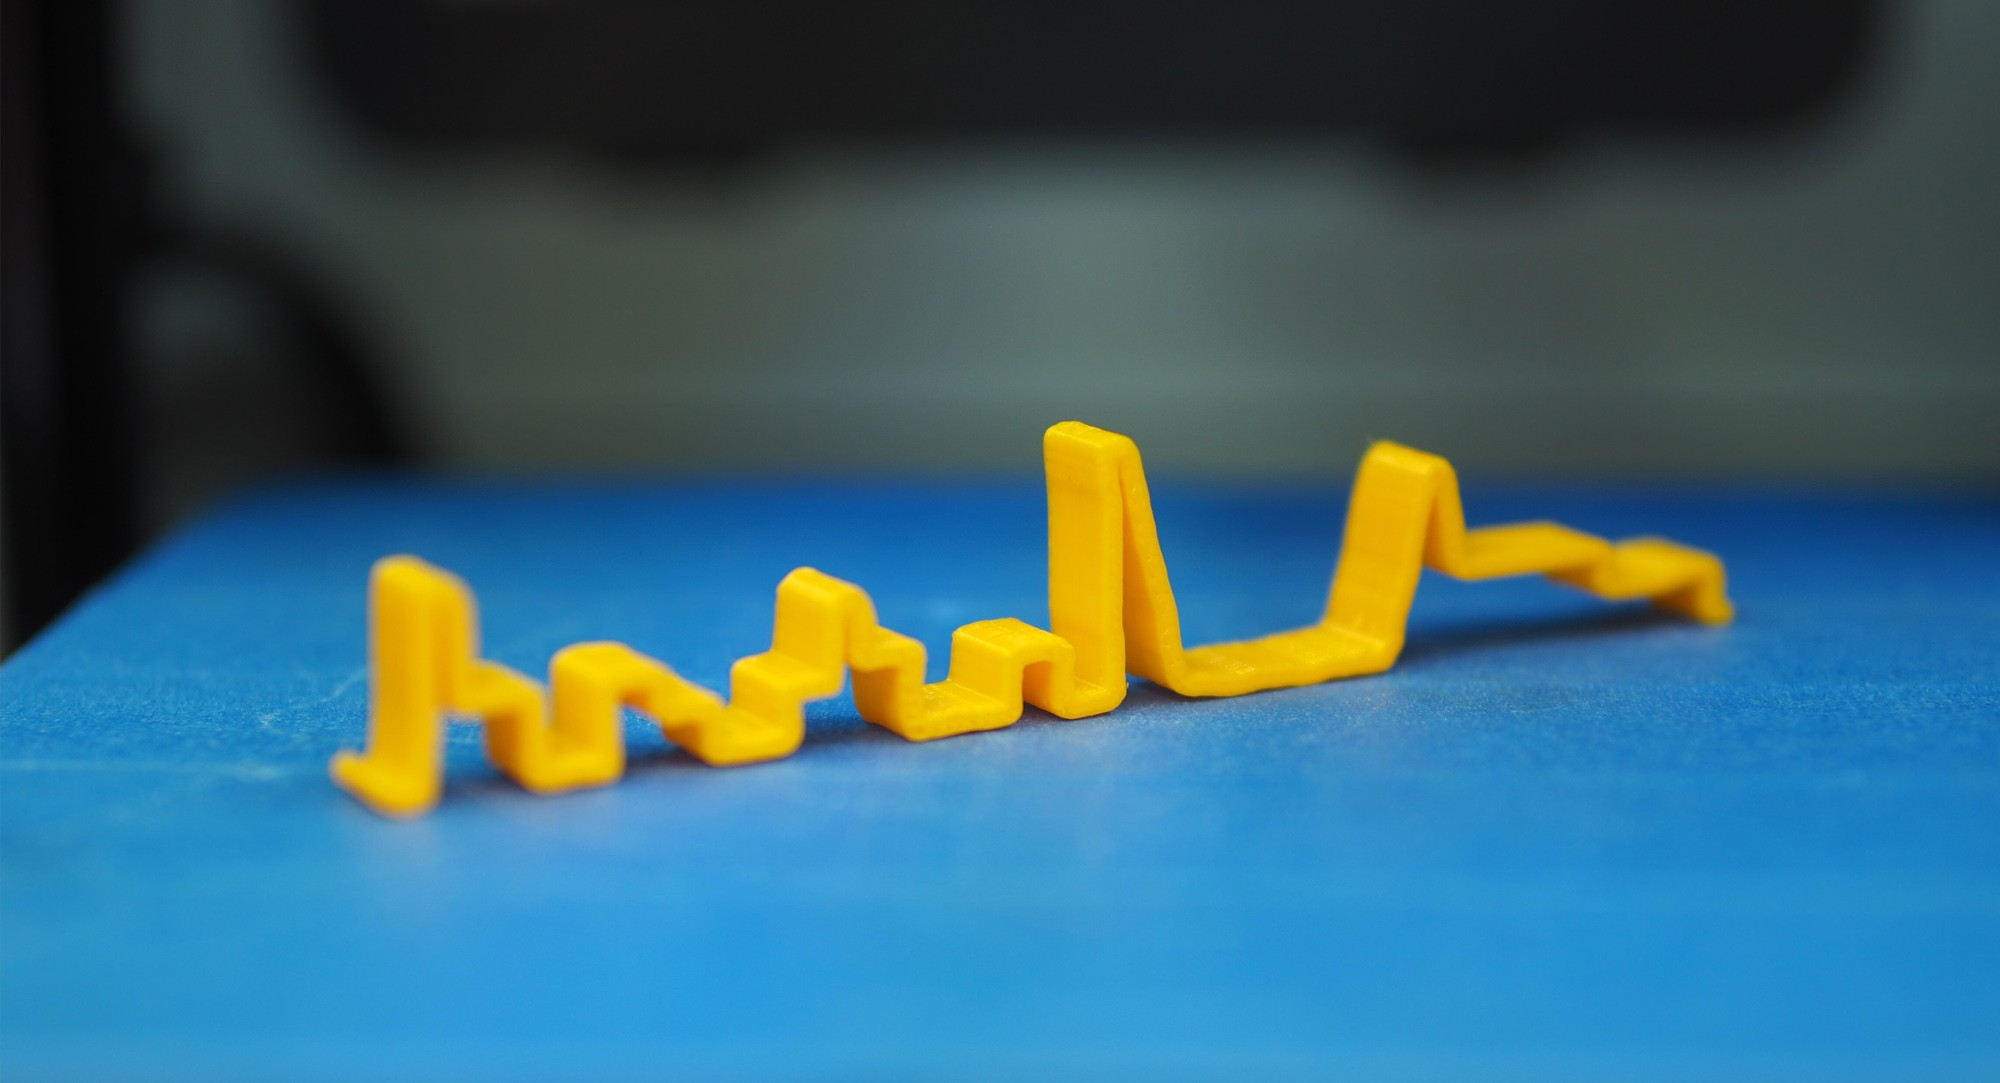 Lesson plan to help students explore practical 3D Printing constraints